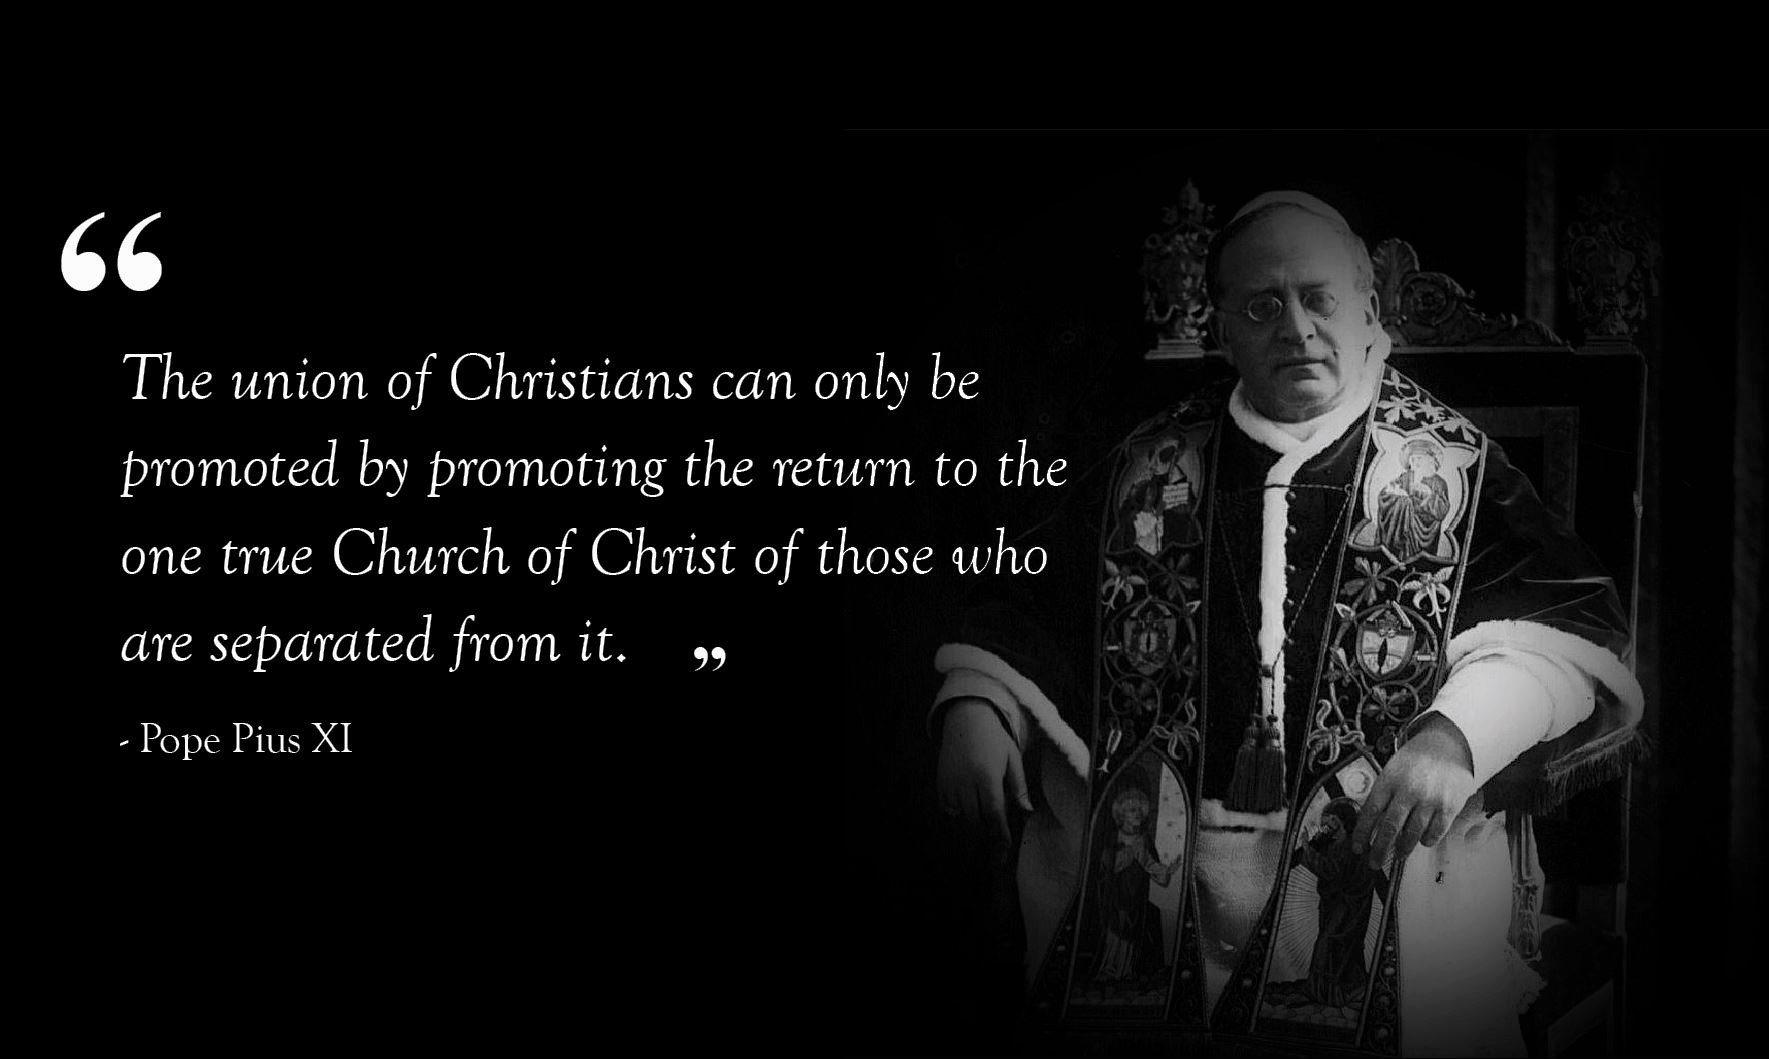 pius xi quote